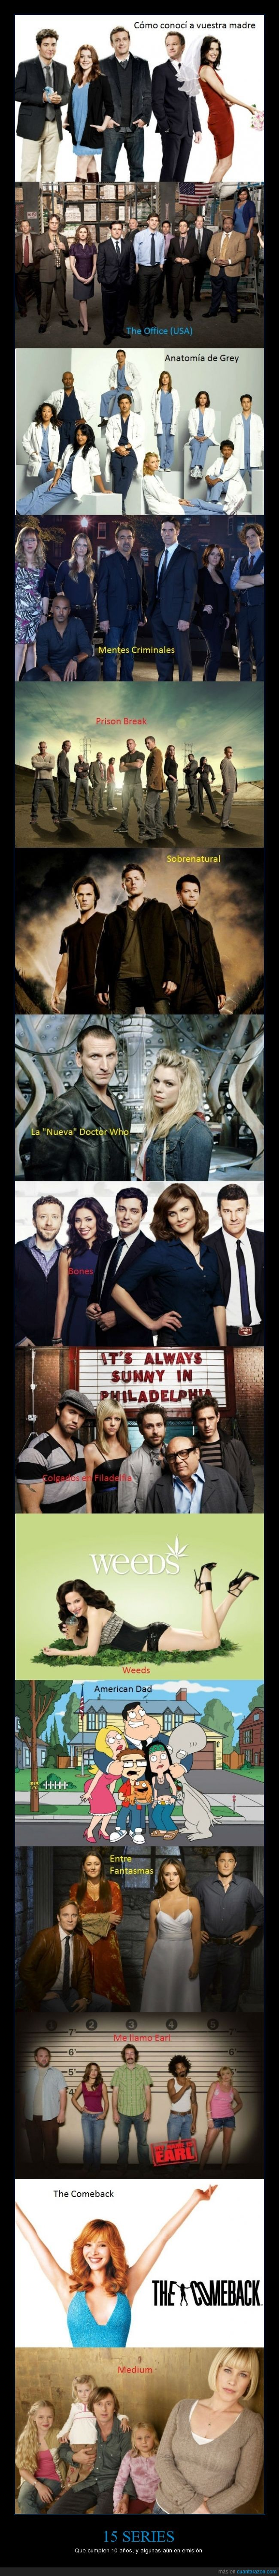 10 años,15 series,años,cumplir,dr. who,entre fantasmas,himym,medium,Series,supernatural,the comeback,weeds